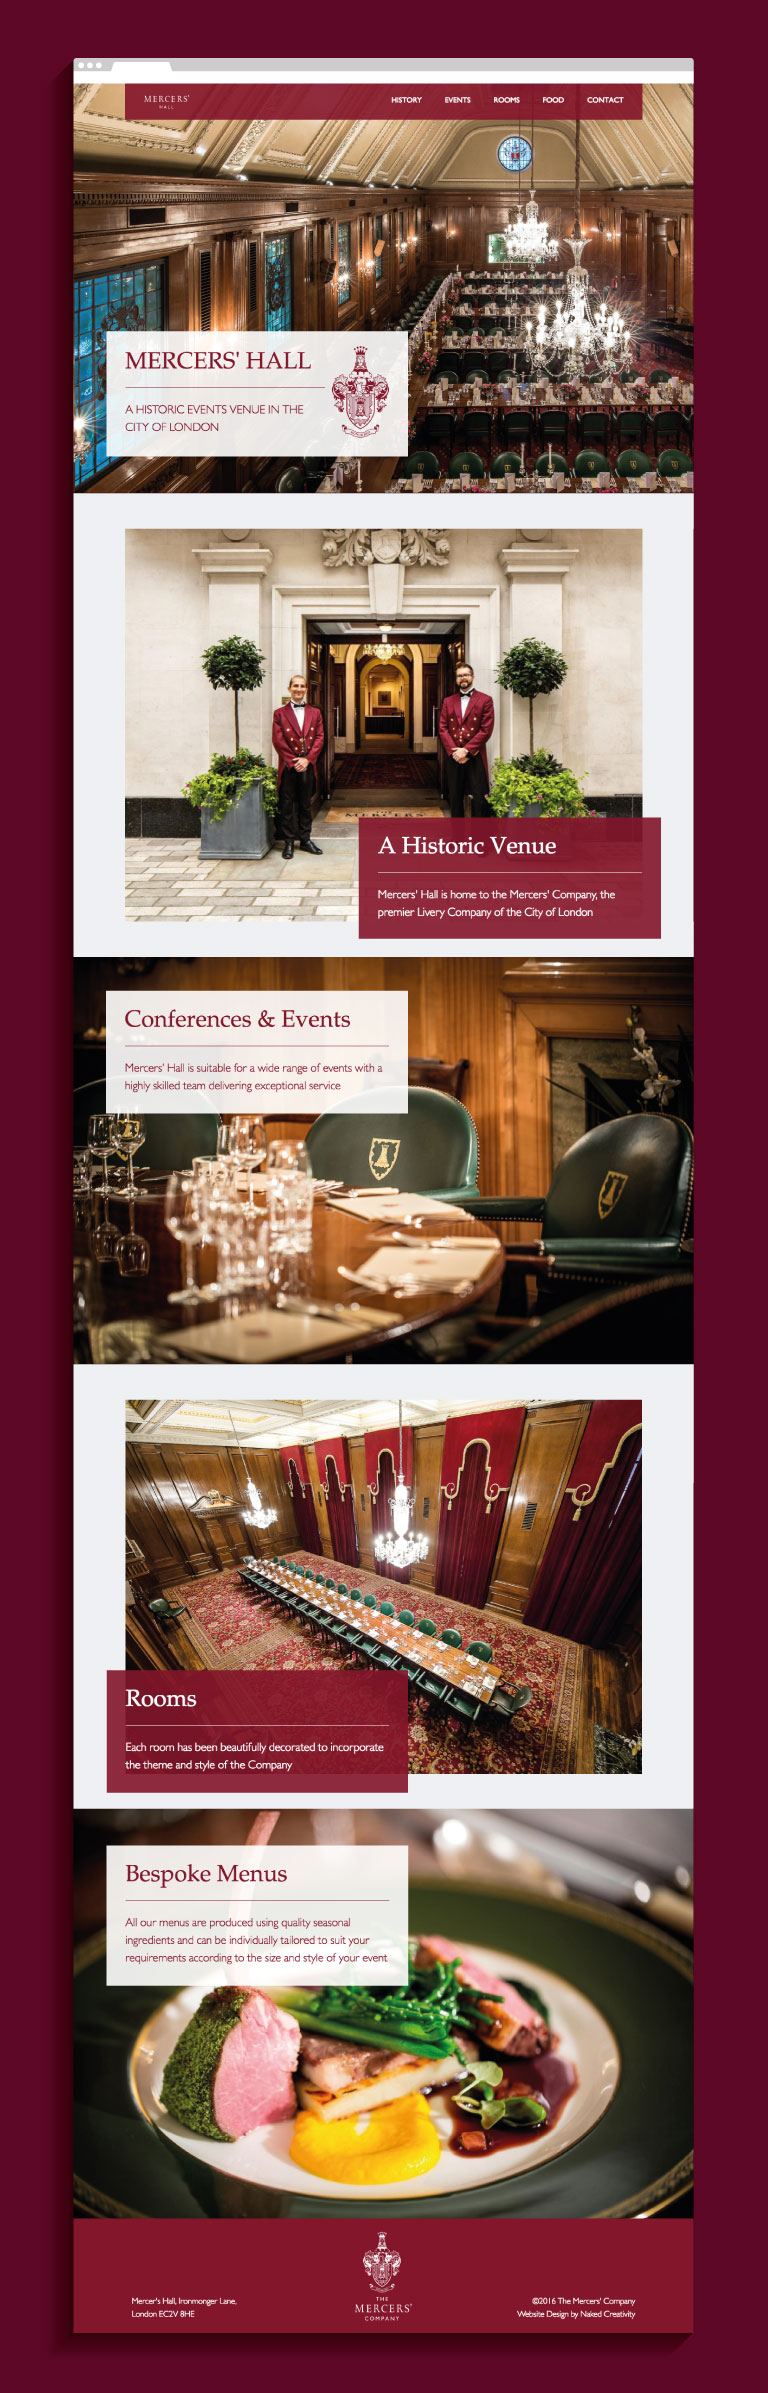 The Mercers' Hall website homepage - mobile